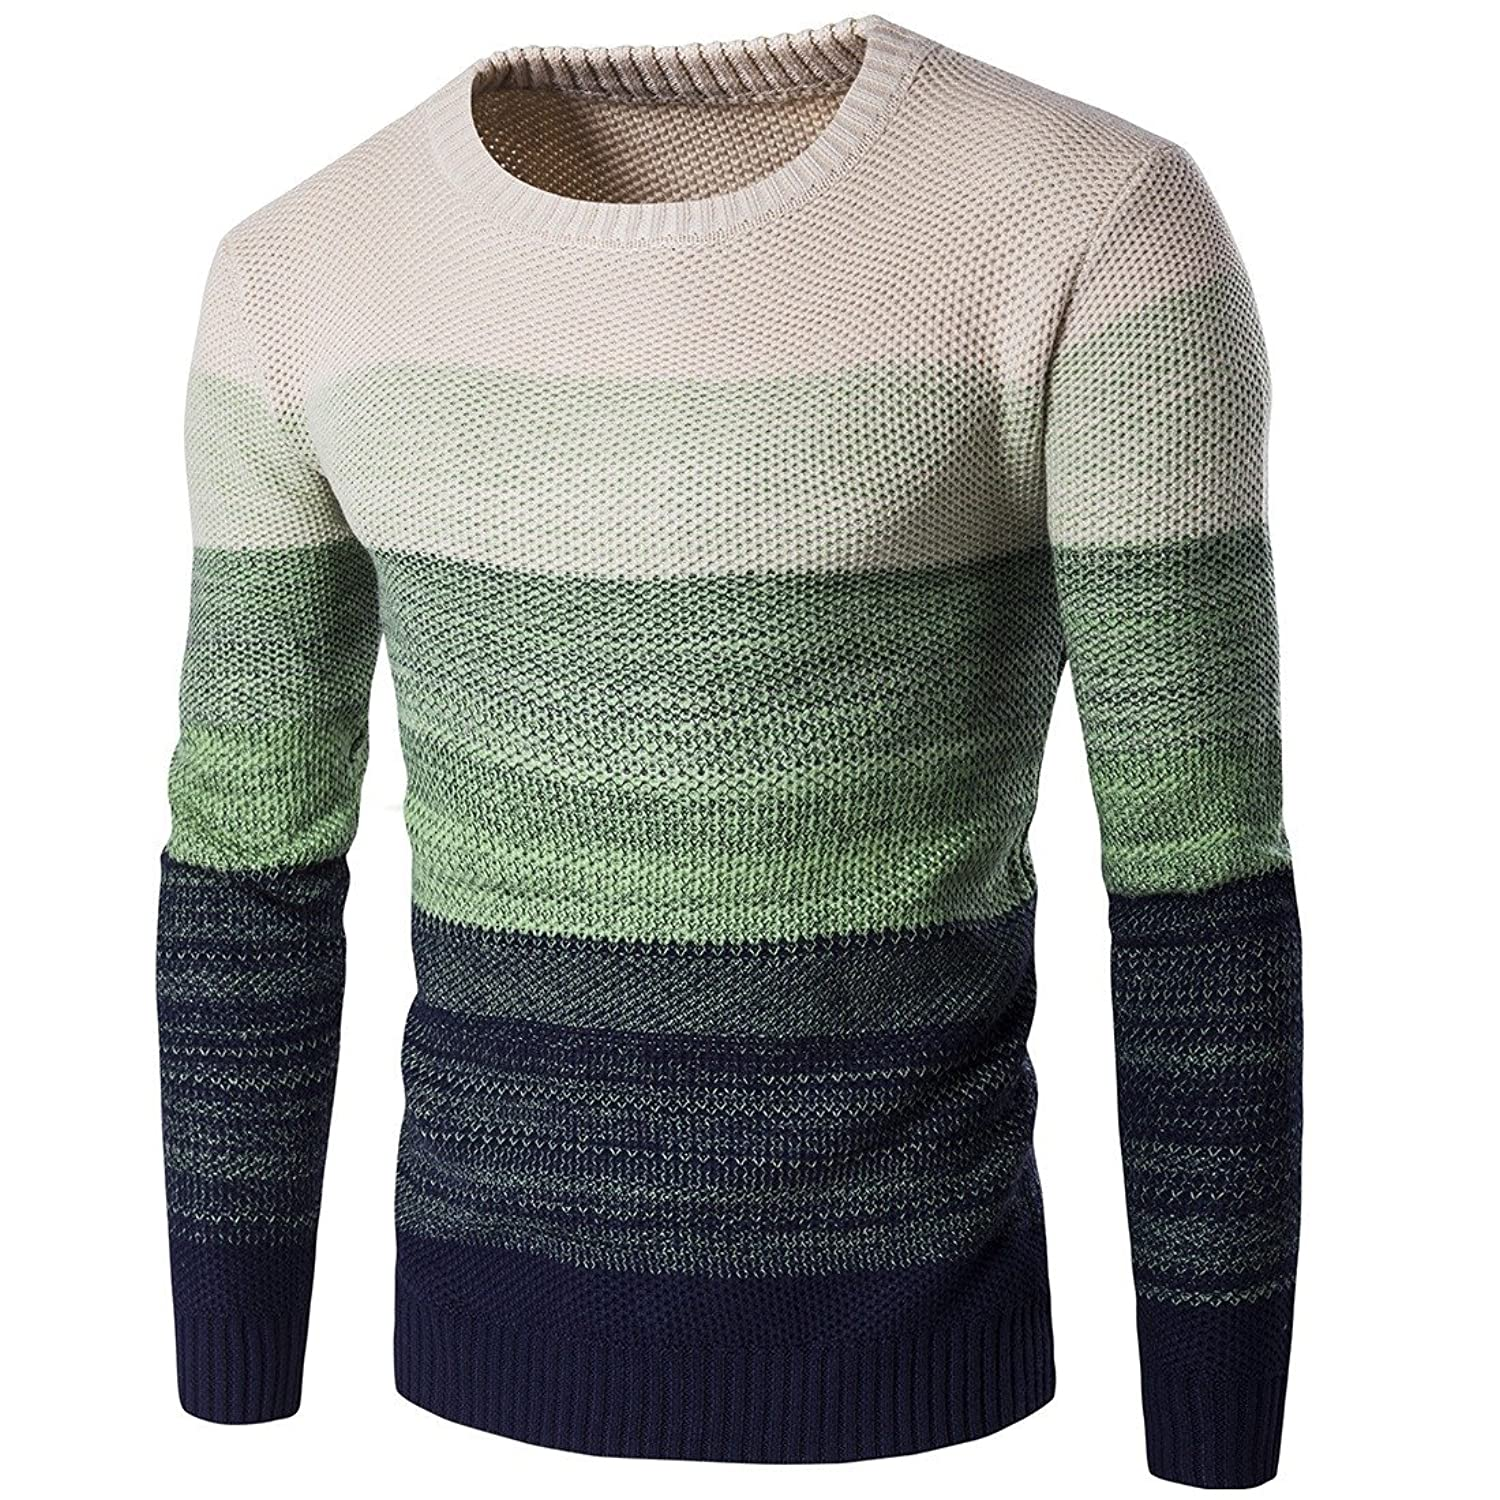 CBTLVSN Mens Casual Knitted Long Sleeve Crew Neck Loose Fit Pullover Sweater